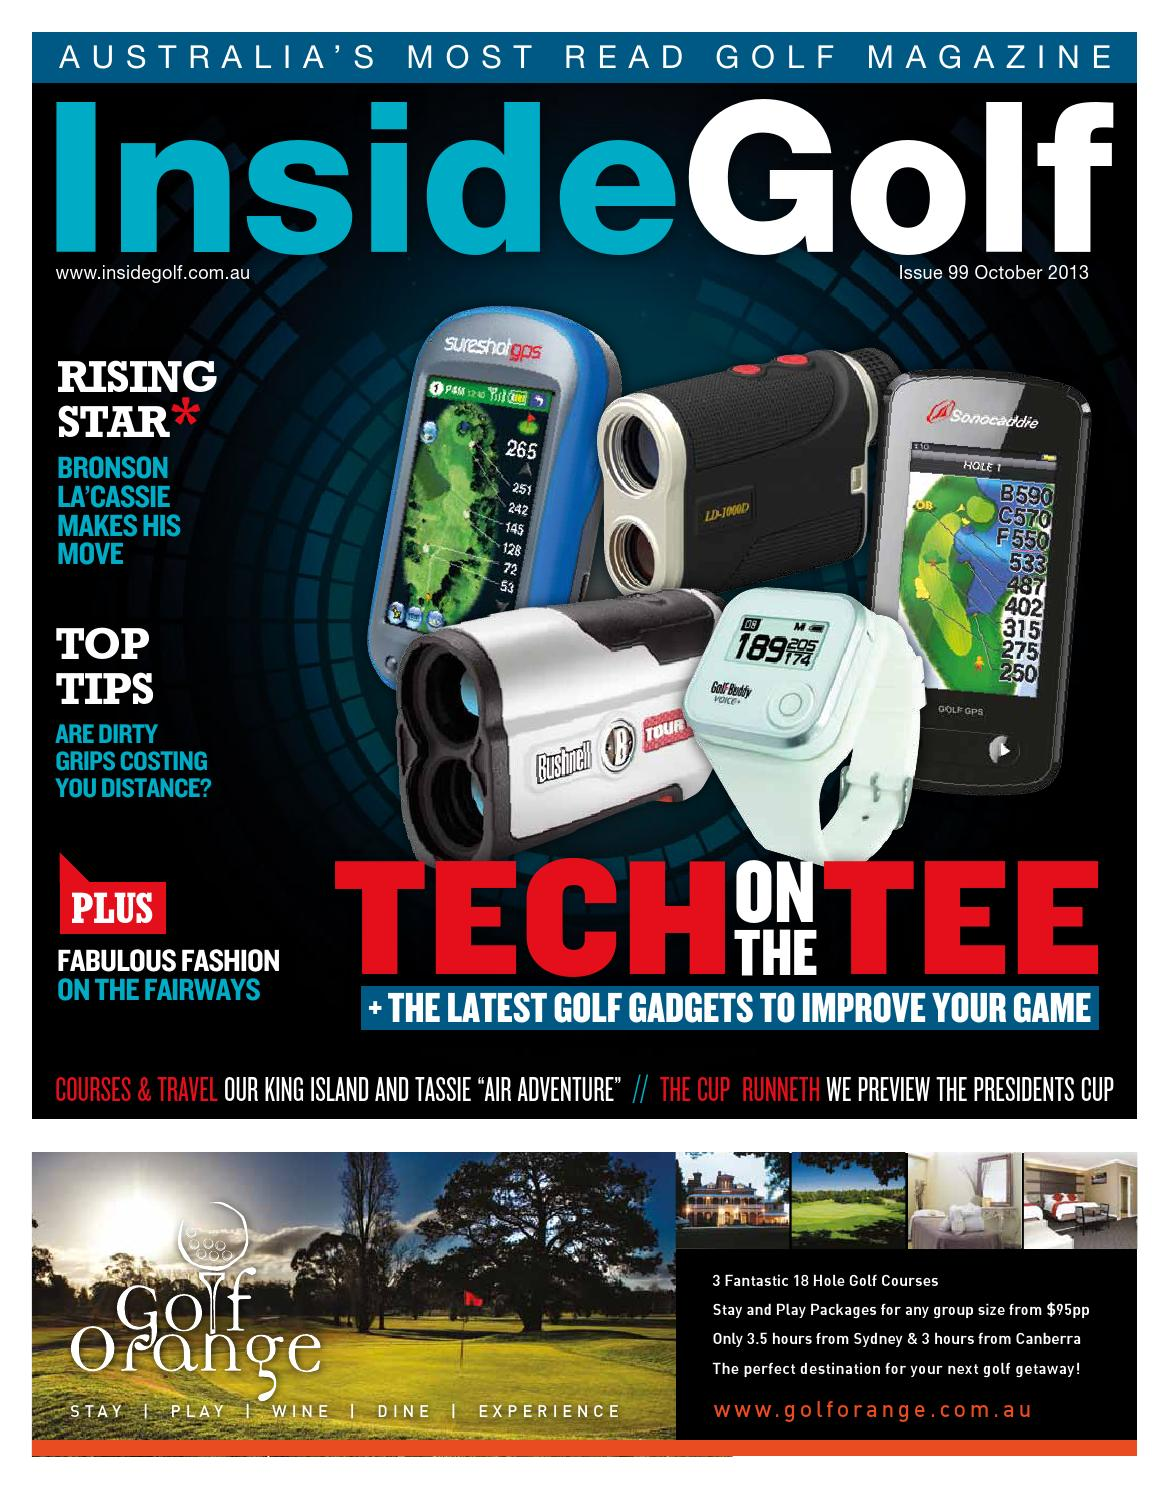 Inside Golf 99 By Issuu Buy 1 Get Free Monopoly Cosmetic Organizer Tas Treveler